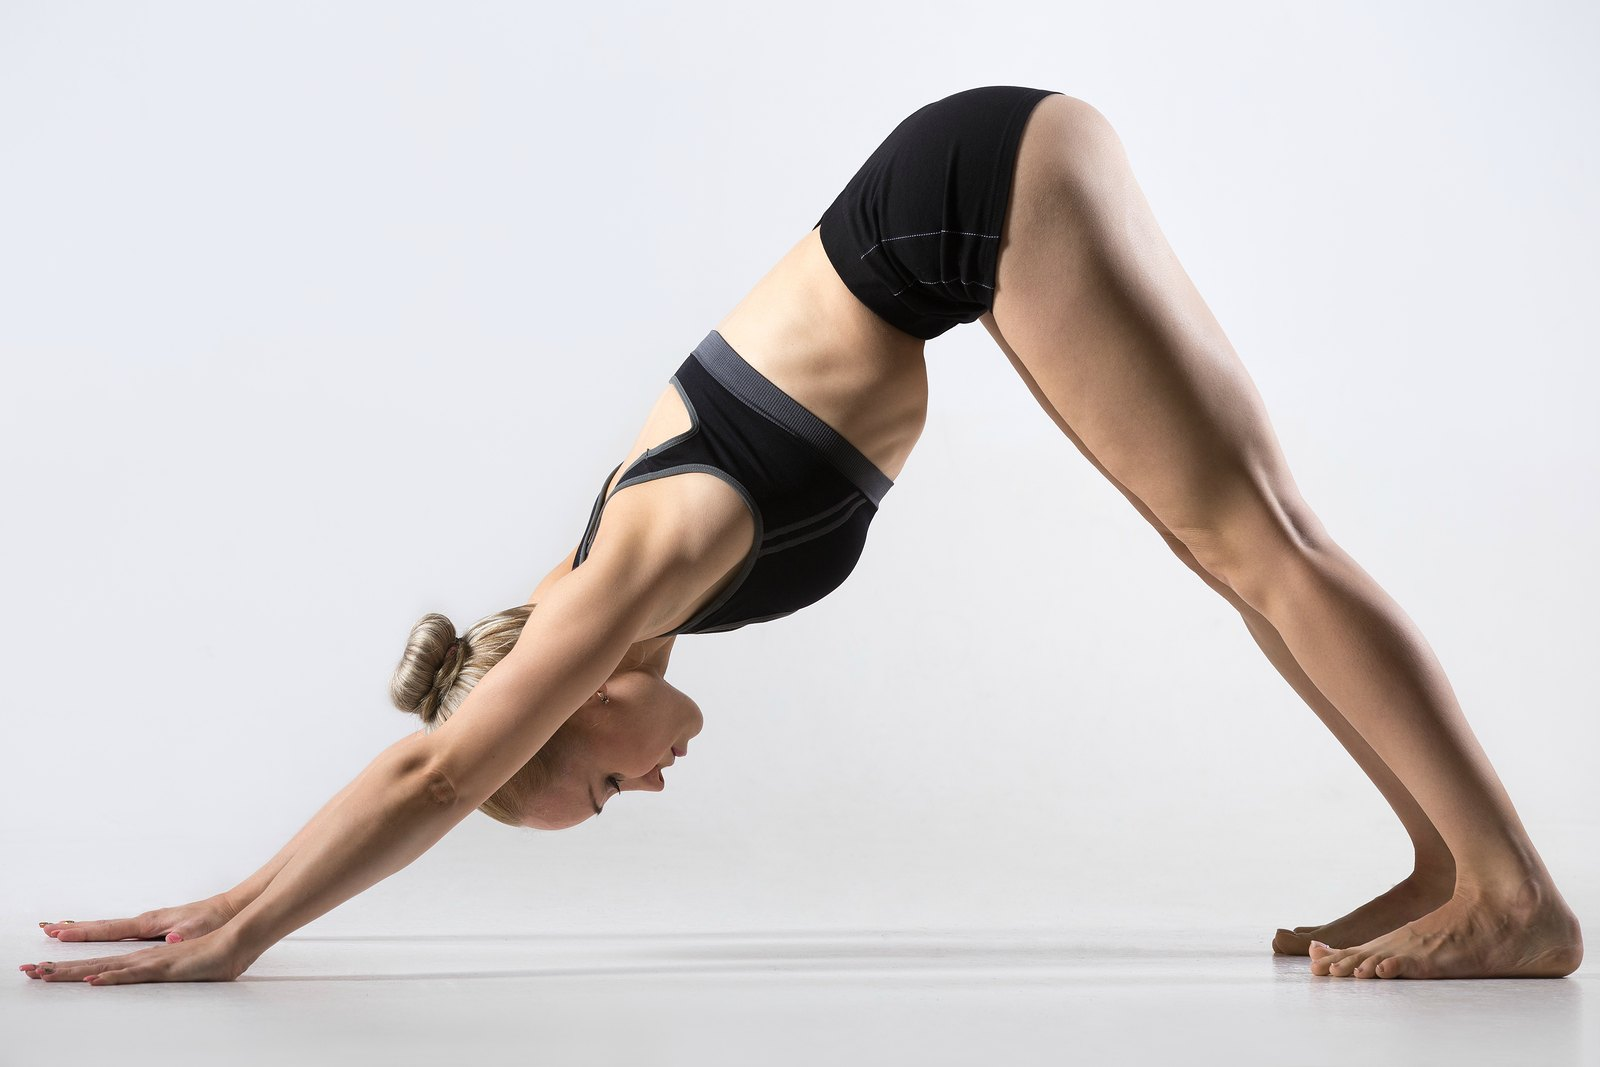 5 Yoga Asanas To Reduce Back Pain And Stay Healthy